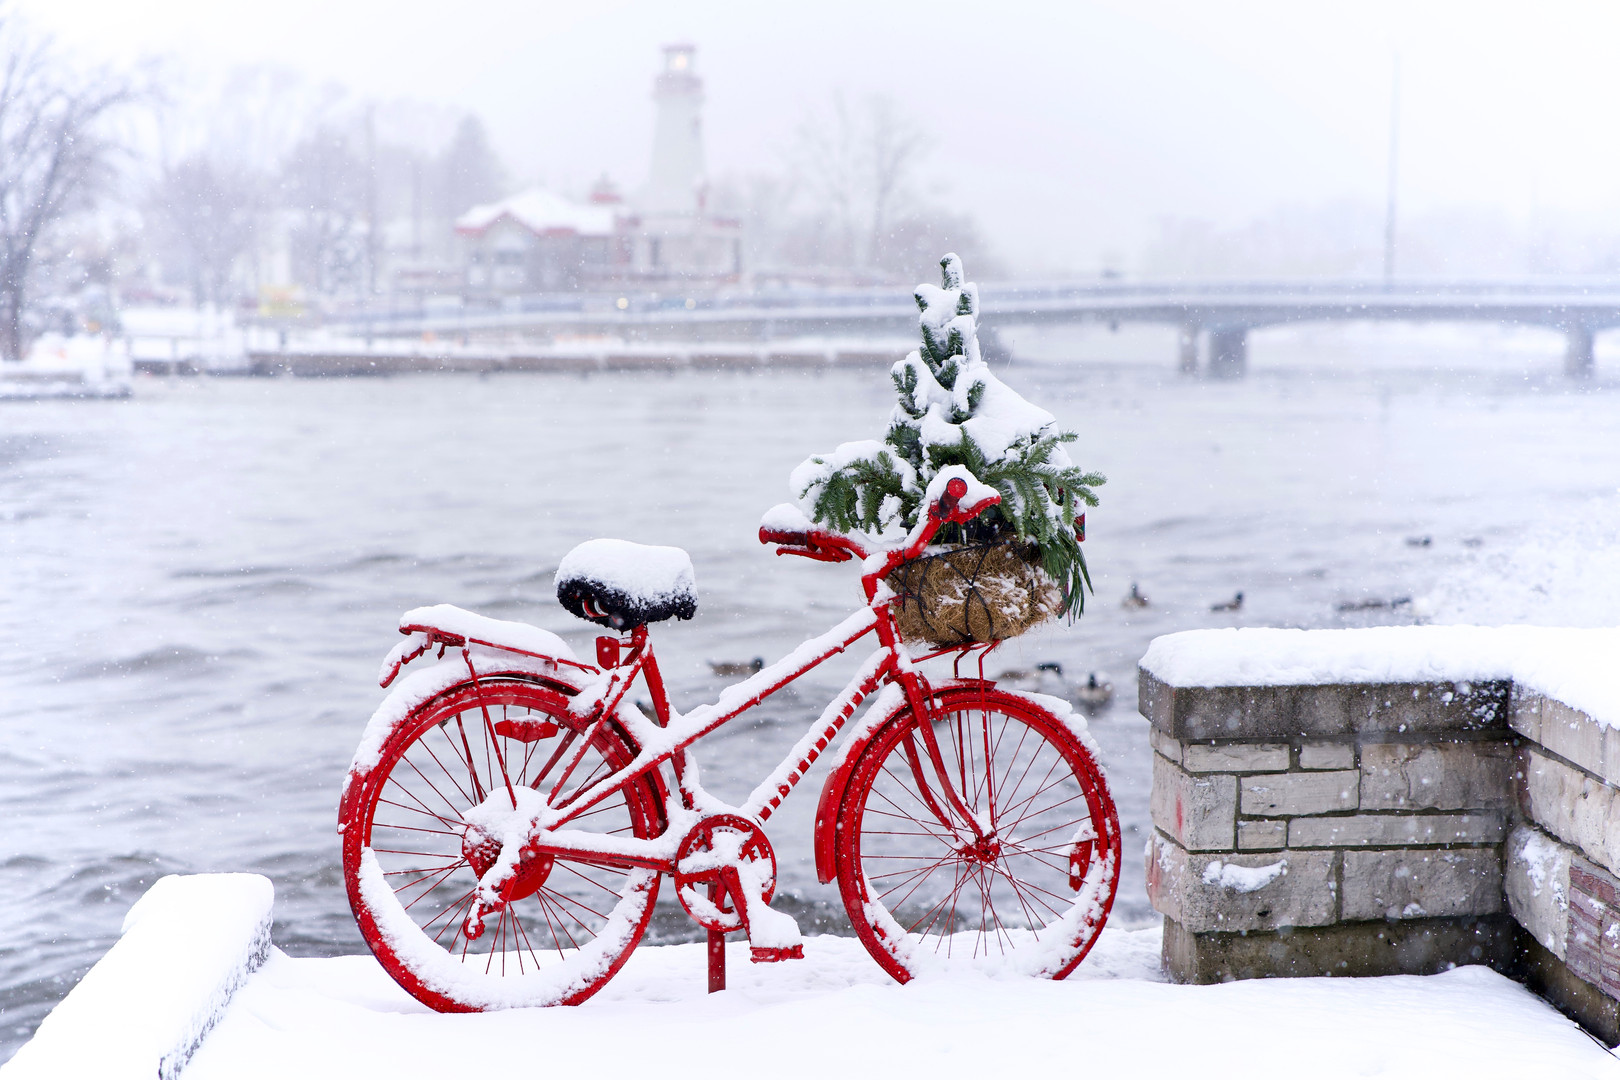 Port Credit red bike in winter